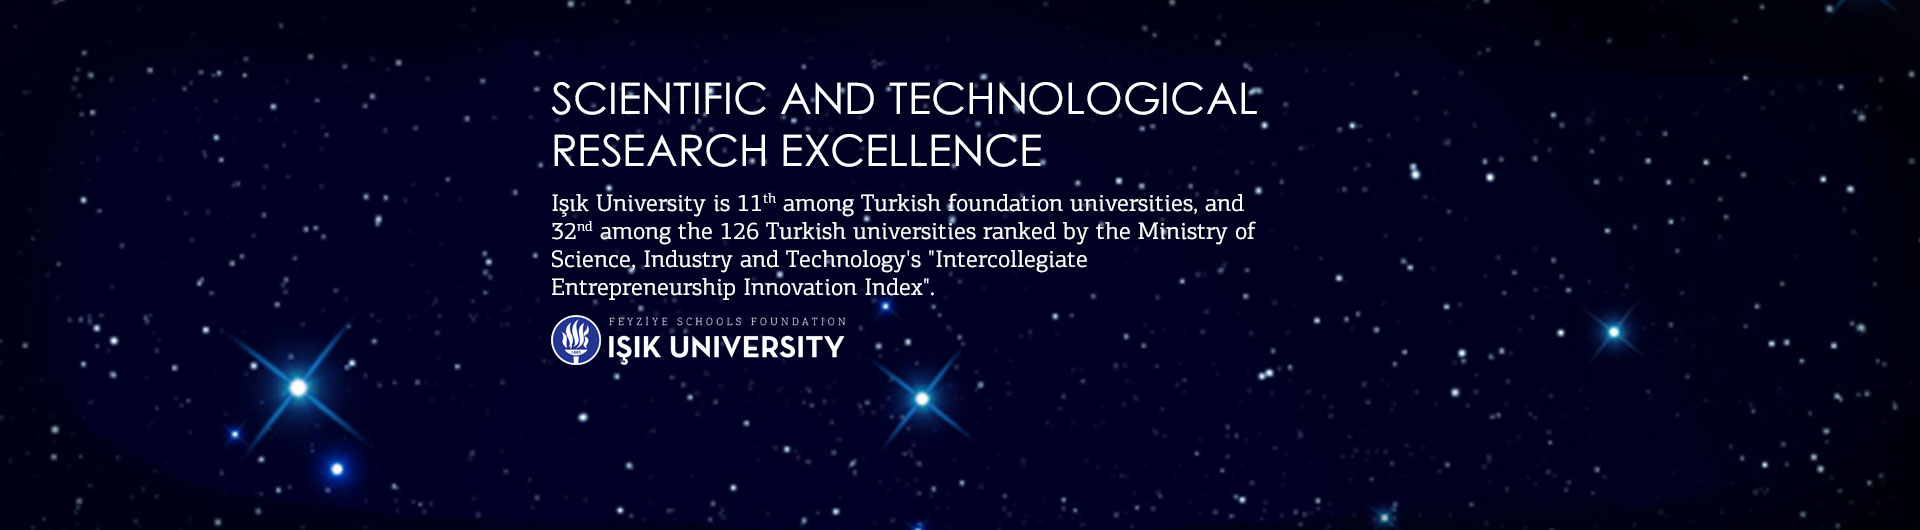 Scientific and Technological Research Excellence